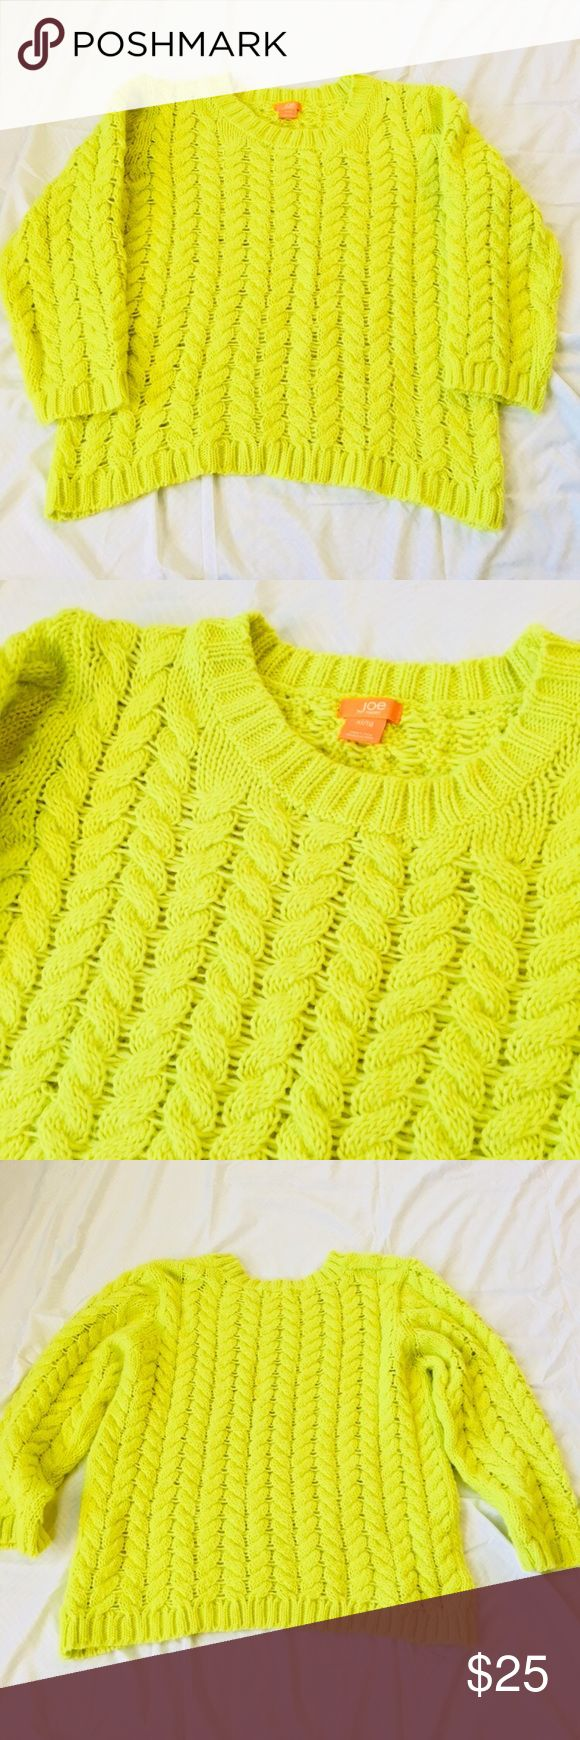 Joe Fresh Sweater ✨ worn once - like new! ✨ bright neon yellow fluffy sweater from Joe Fresh - very cozy! Joe Fresh Sweaters Crew & Scoop Necks